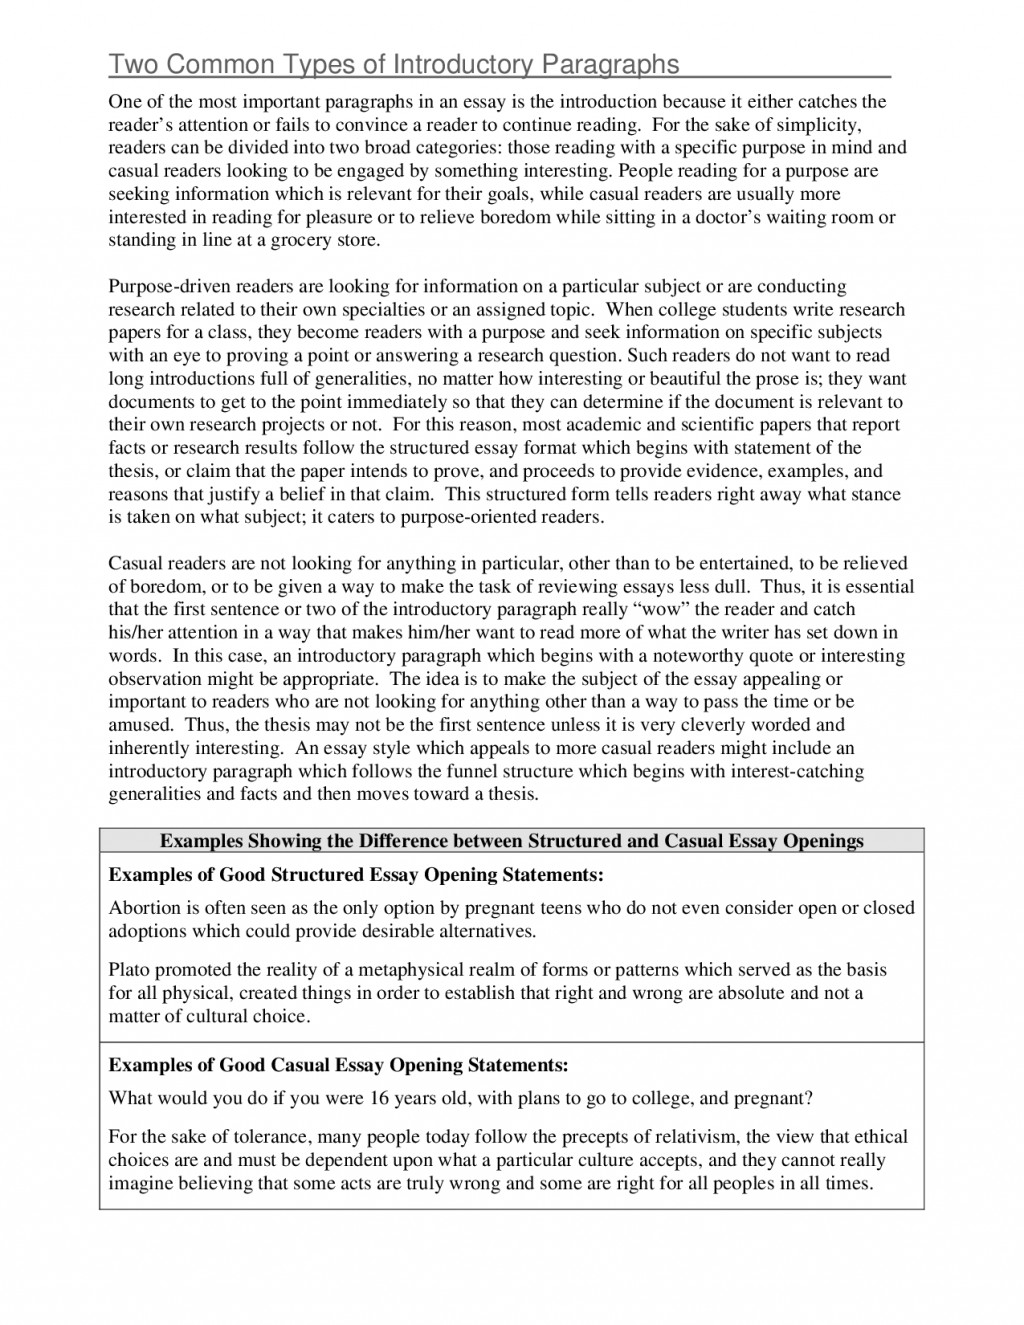 012 Essay About Success Surprising On Successful Leadership Student And Failure Large